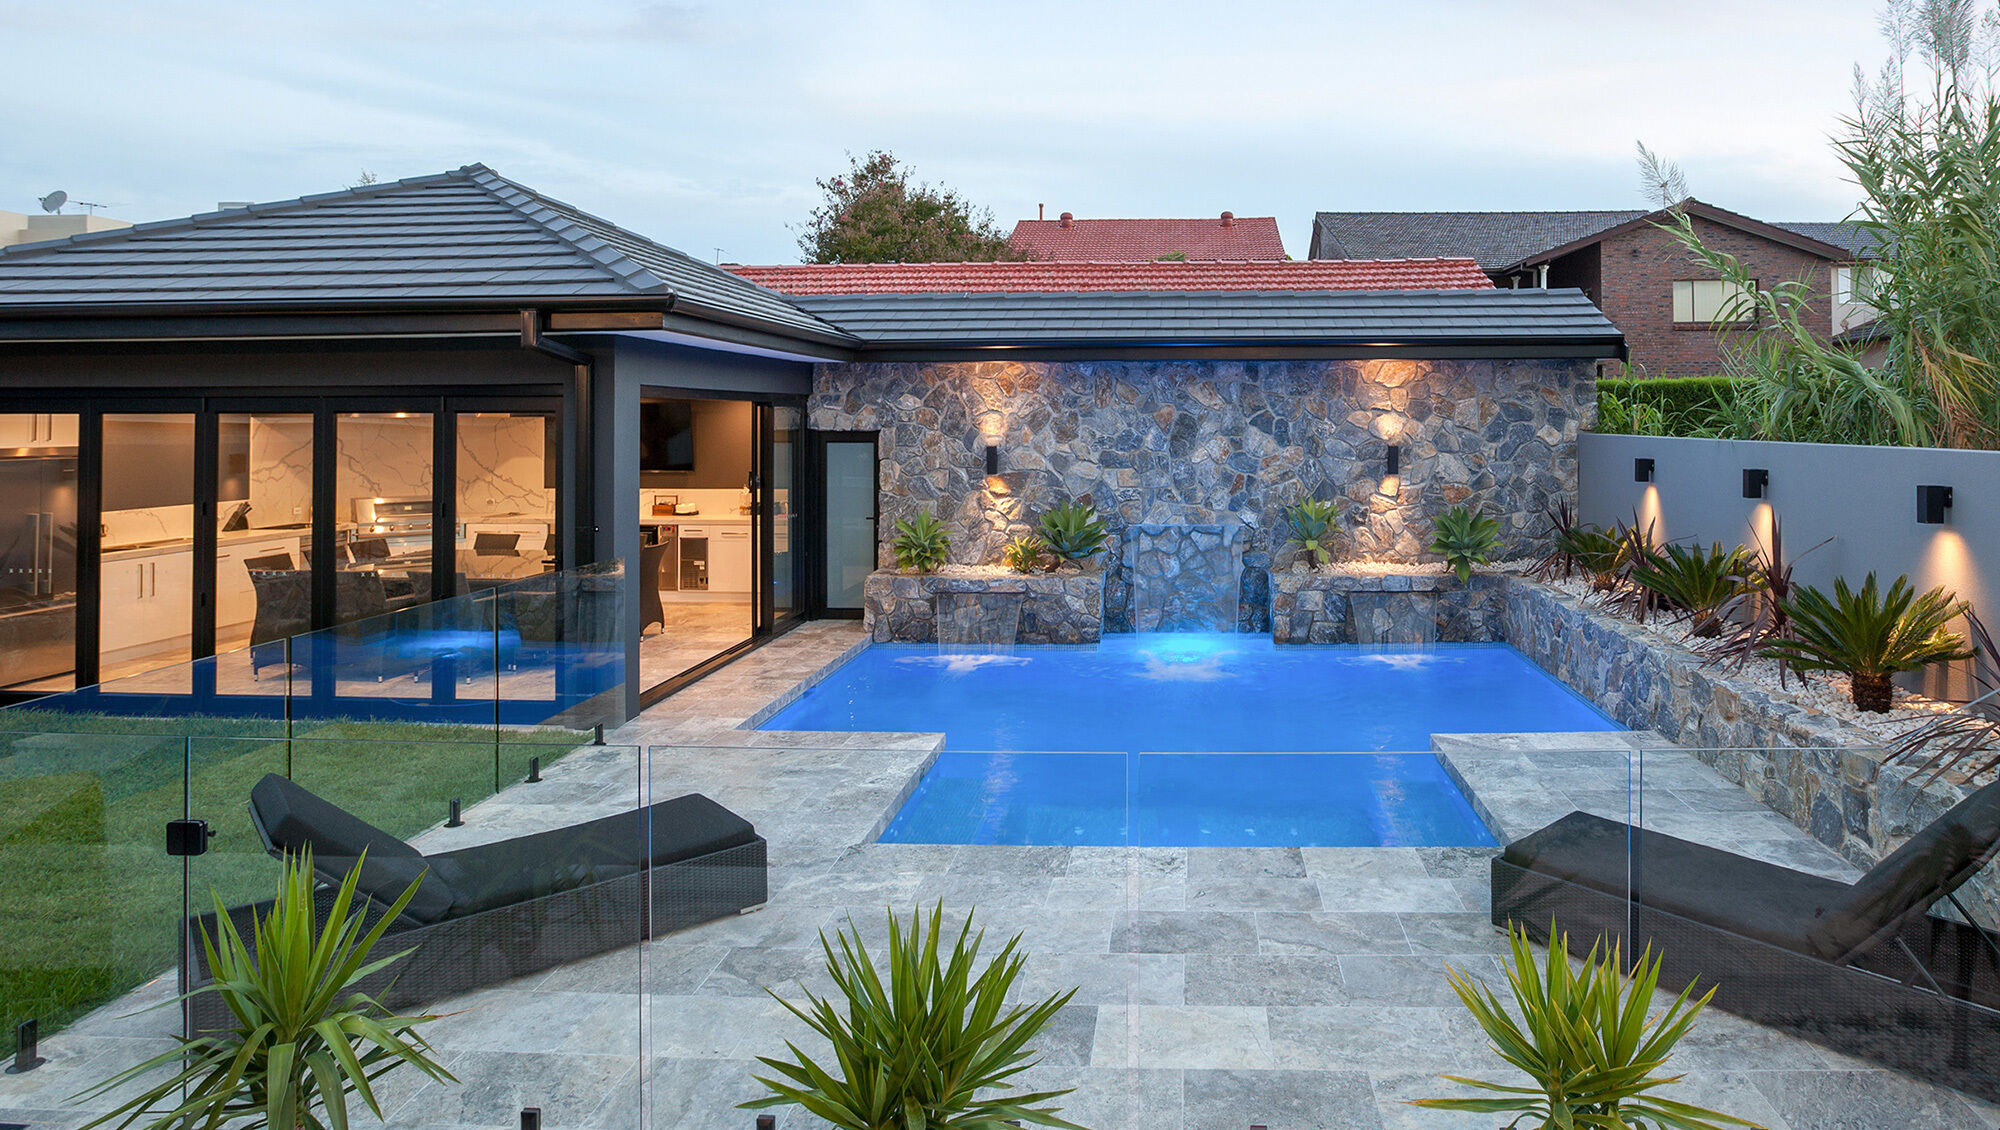 Earlwood Pool / Cabana / Landscaping / Patio